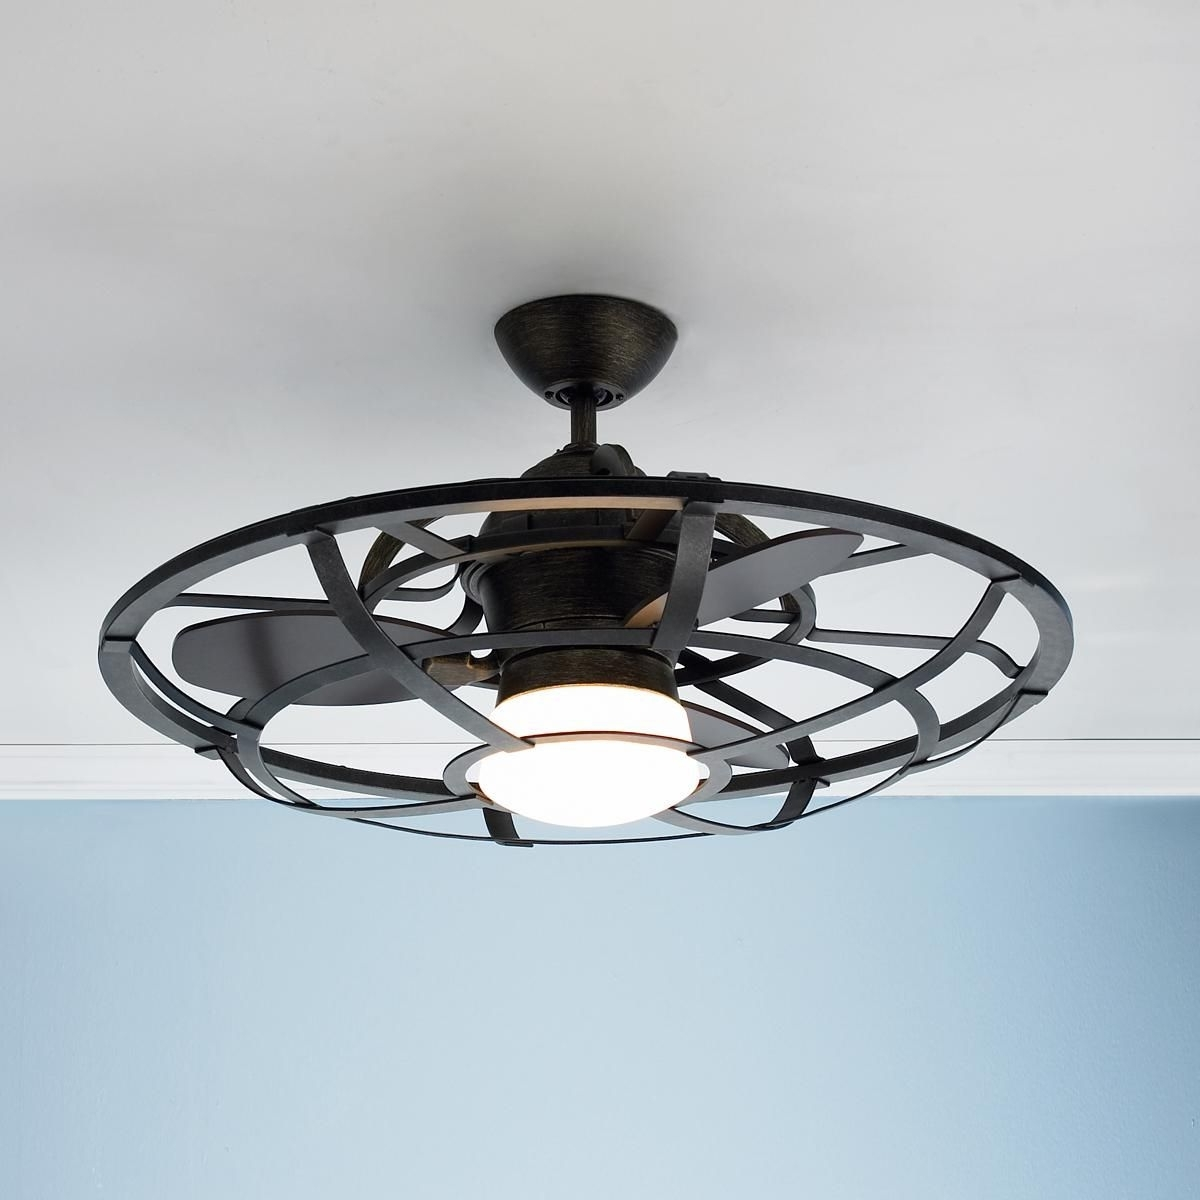 Widely Used Industrial Outdoor Ceiling Fans With Light Regarding Industrial Cage Ceiling Fan (View 19 of 20)